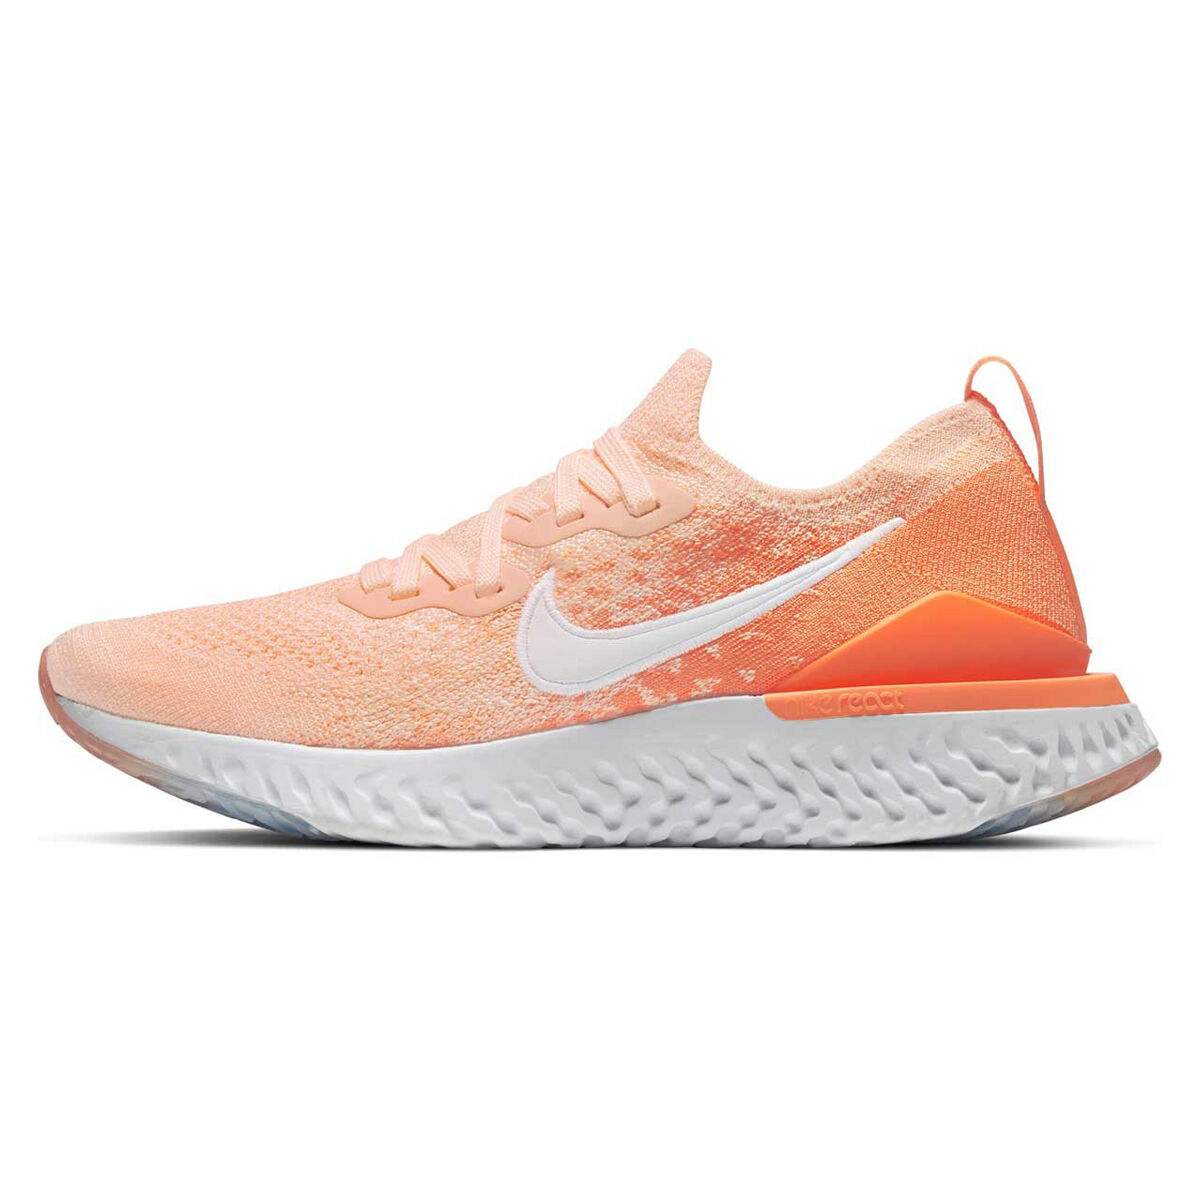 Nike Epic React Flyknit 2 Womens Running Shoes